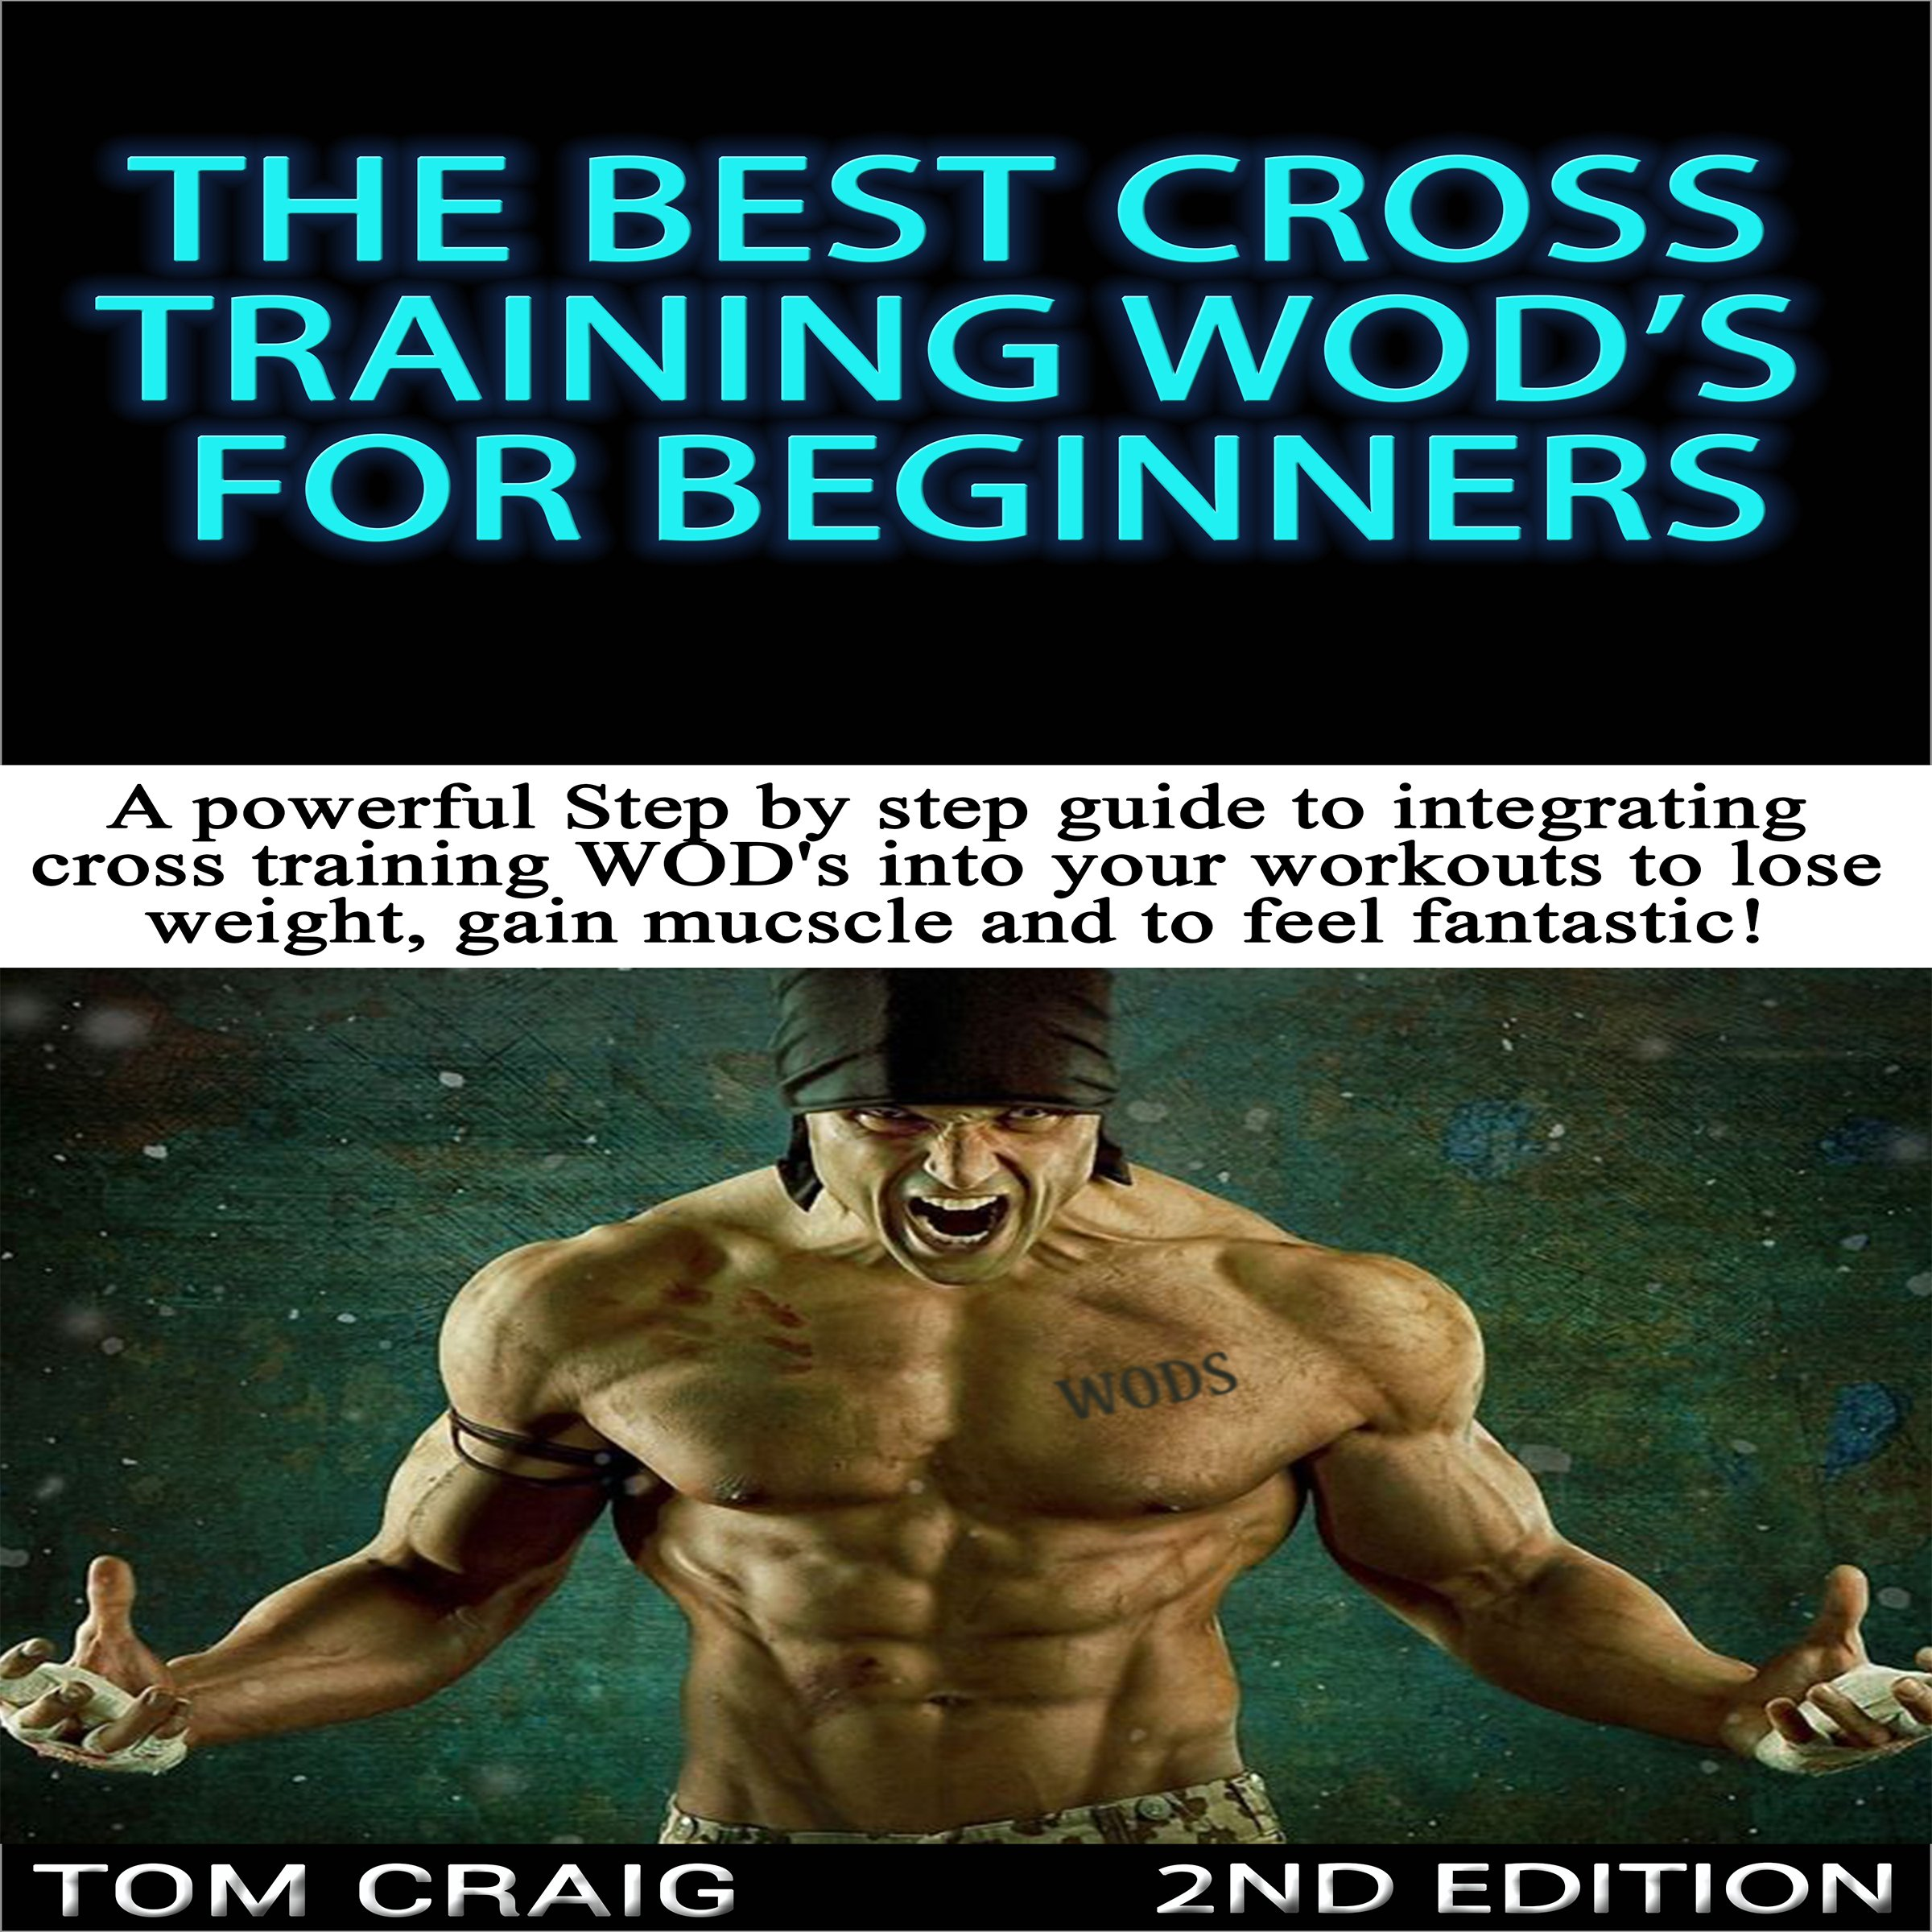 The Best Cross Training WODS for Beginners, 2nd Edition: A Powerful Step by Step Guide to Integrating Cross Training WODs into Your Workout